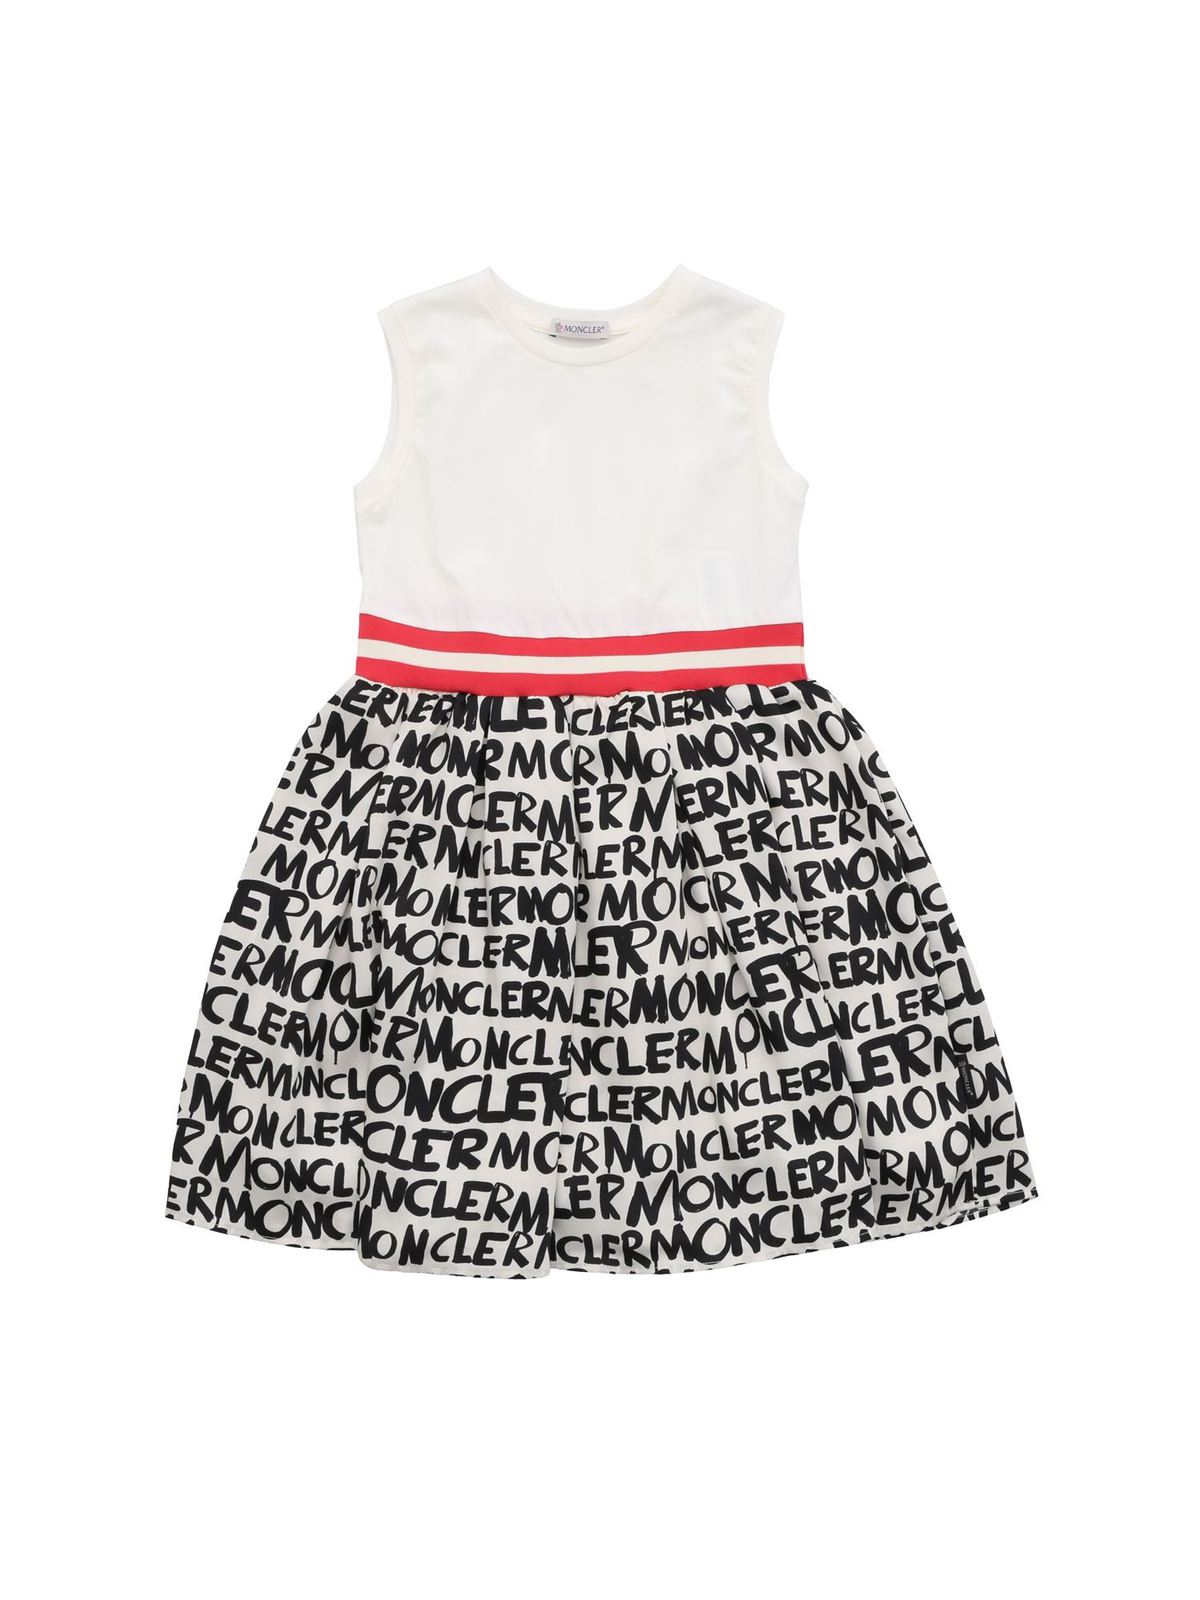 MONCLER JR MONCLER PRINTED CREAM SLEEVELESS DRESS